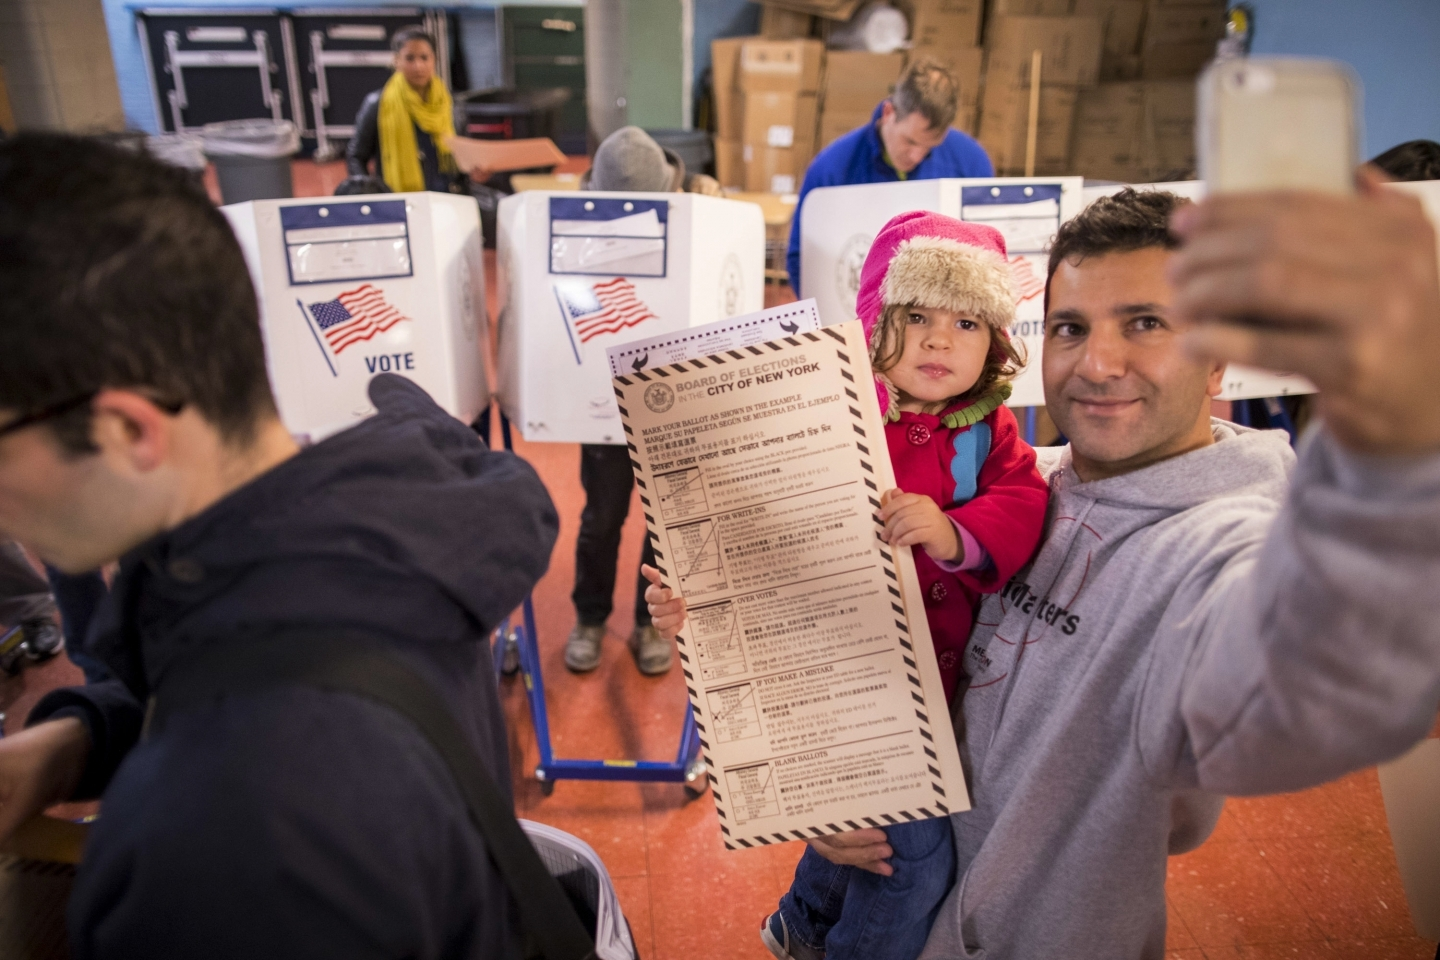 A man takes a selfie with his child as he waits to vote at a polling station in Brooklyn borough of New York on Tuesday, Nov. 8, 2016. (AP Photo/Alexander F. Yuan)